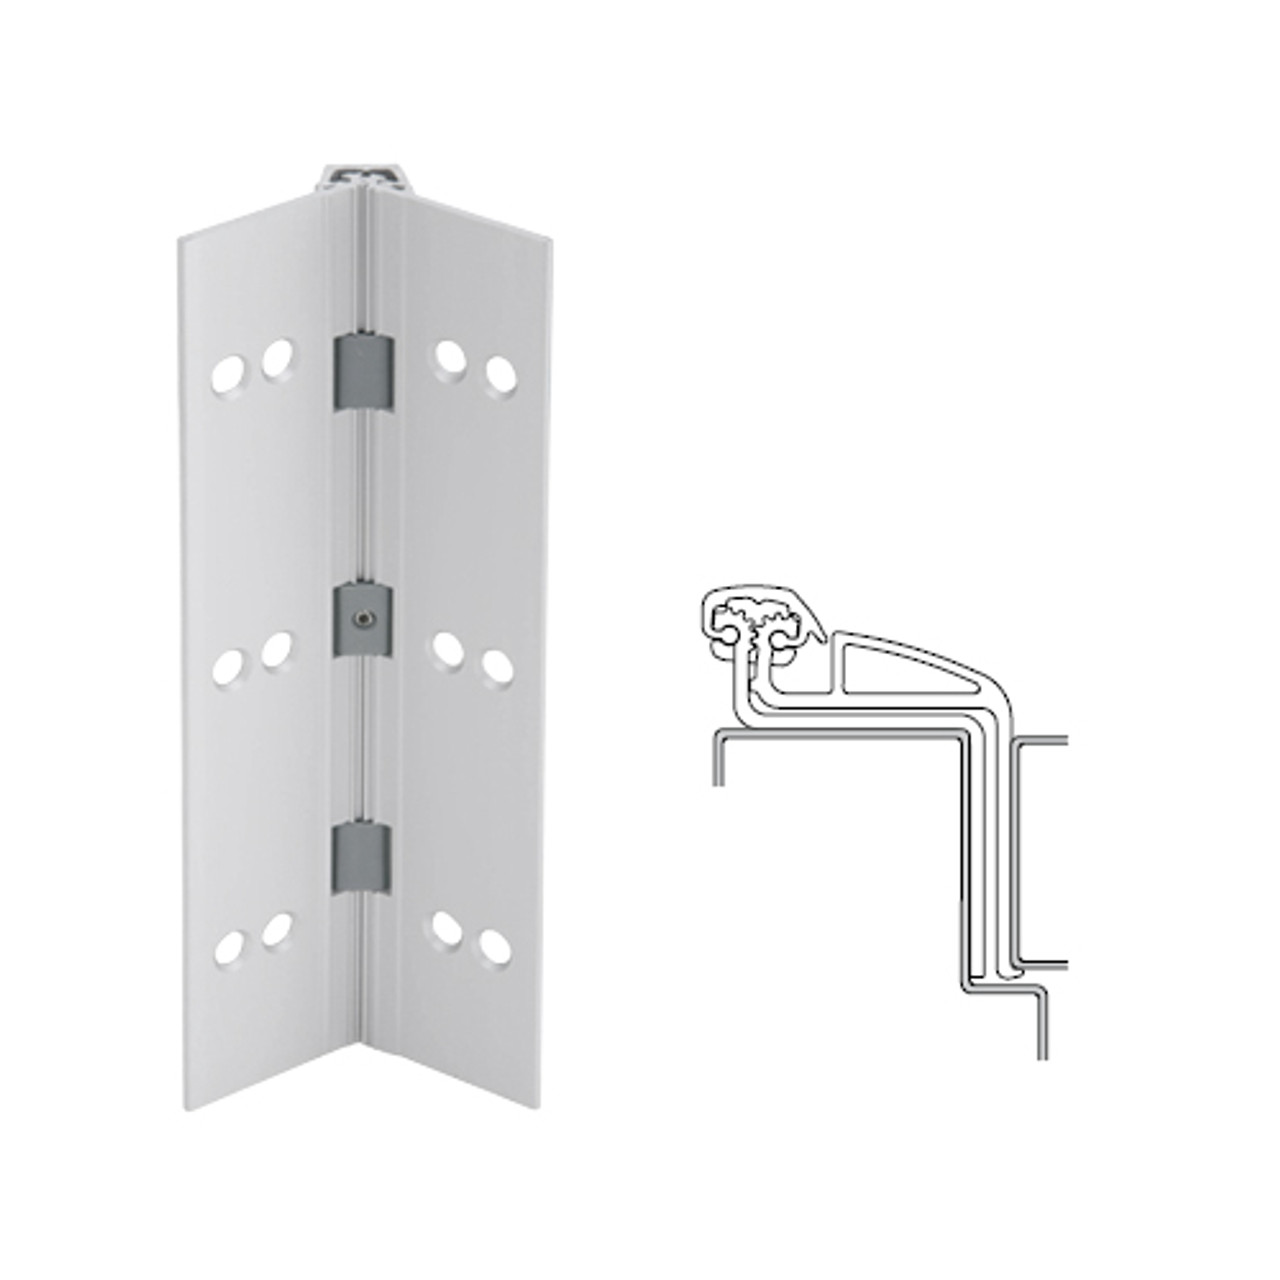 041XY-US28-83-WD IVES Full Mortise Continuous Geared Hinges with Wood Screws in Satin Aluminum